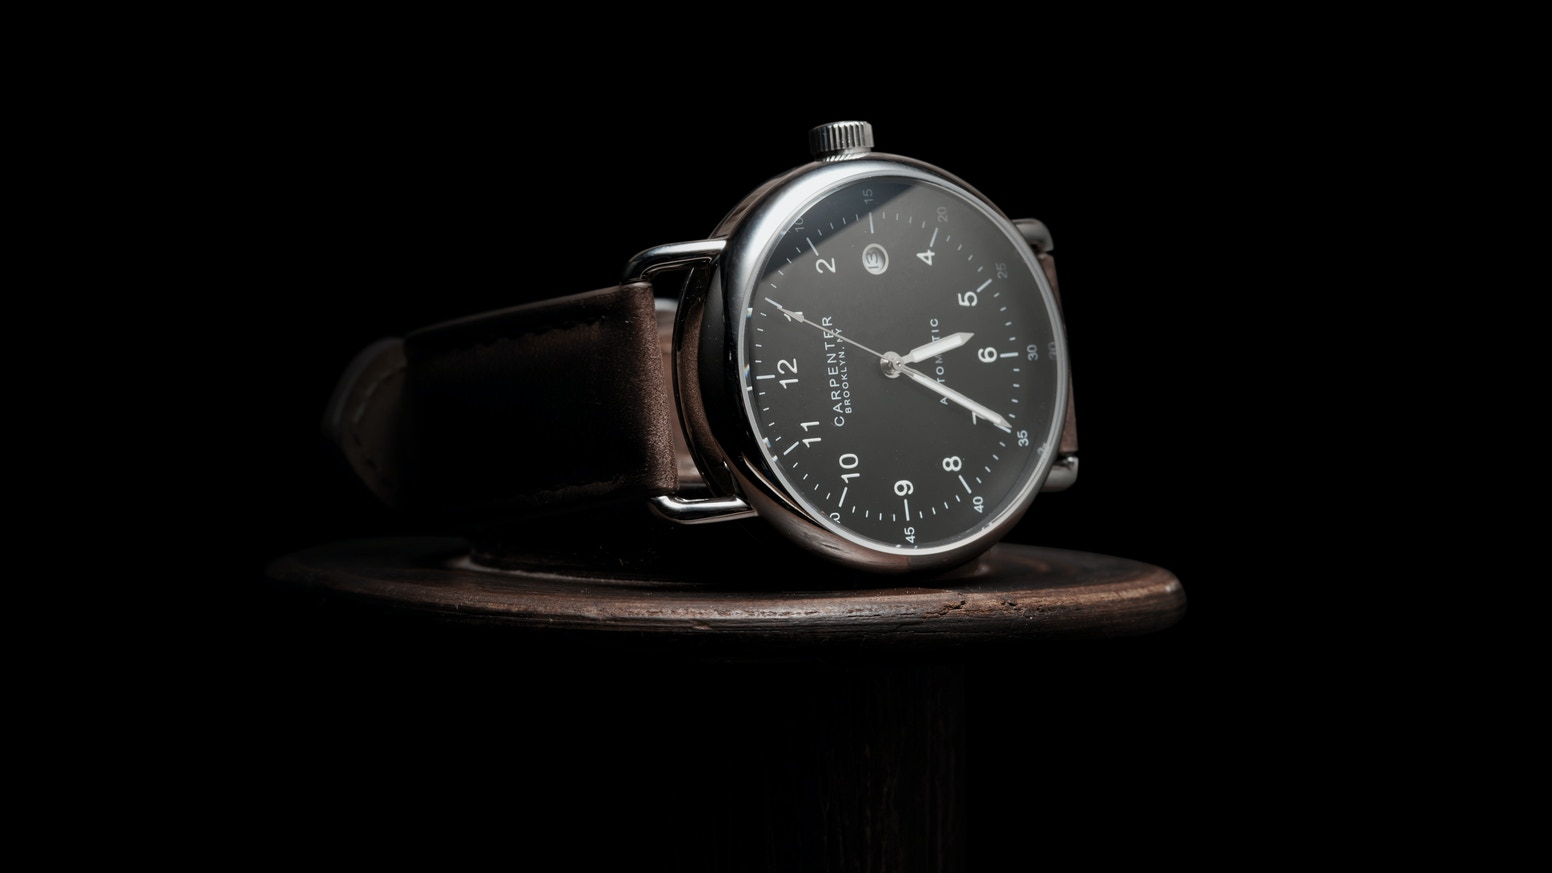 A BROOKLYN DESIGNED, AUTOMATIC WRISTWATCH CHARACTERIZED BY WWII AVIATOR HERITAGE & DEDICATED TO UTILITARIANISM.